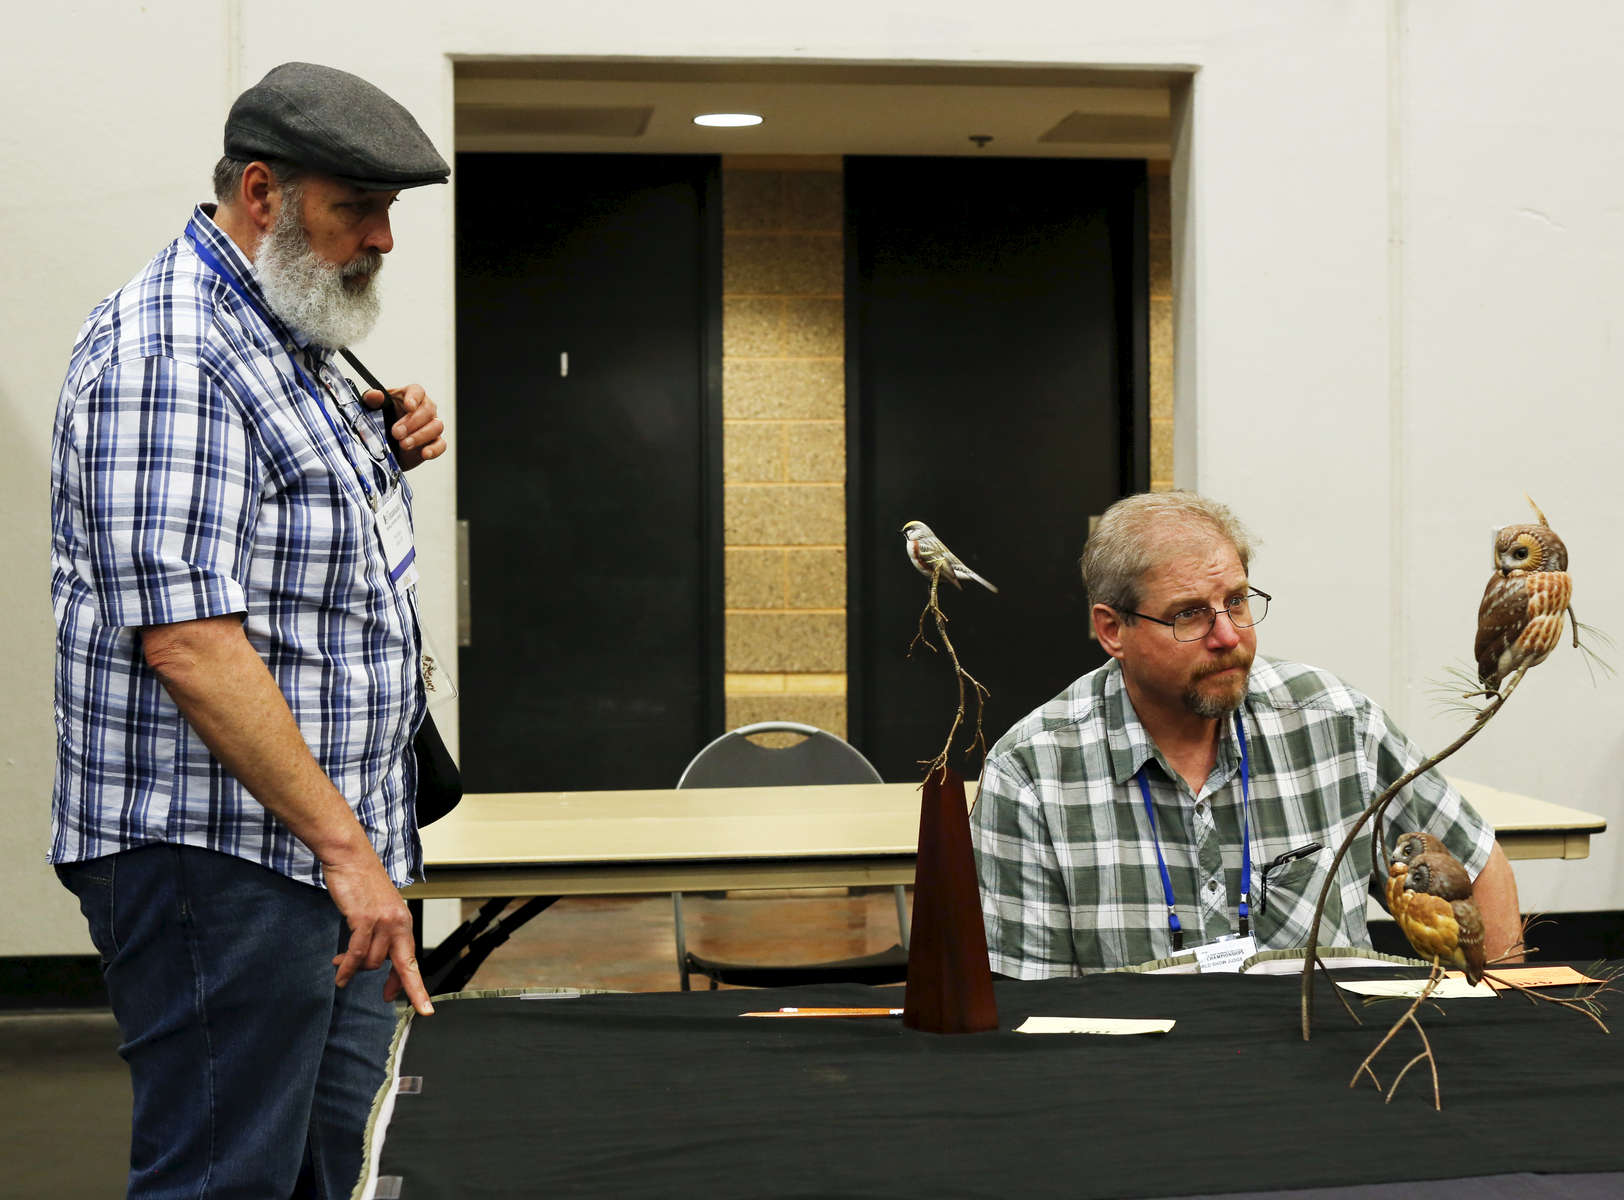 (L-R) Phil Soucy and Dawayne Dewey, mammals judges, look at other entries after judging their categories, during the World Taxidermy & Fish Carving Championships, at the Springfield Expo Center, in Springfield, Missouri on May 1, 2019.